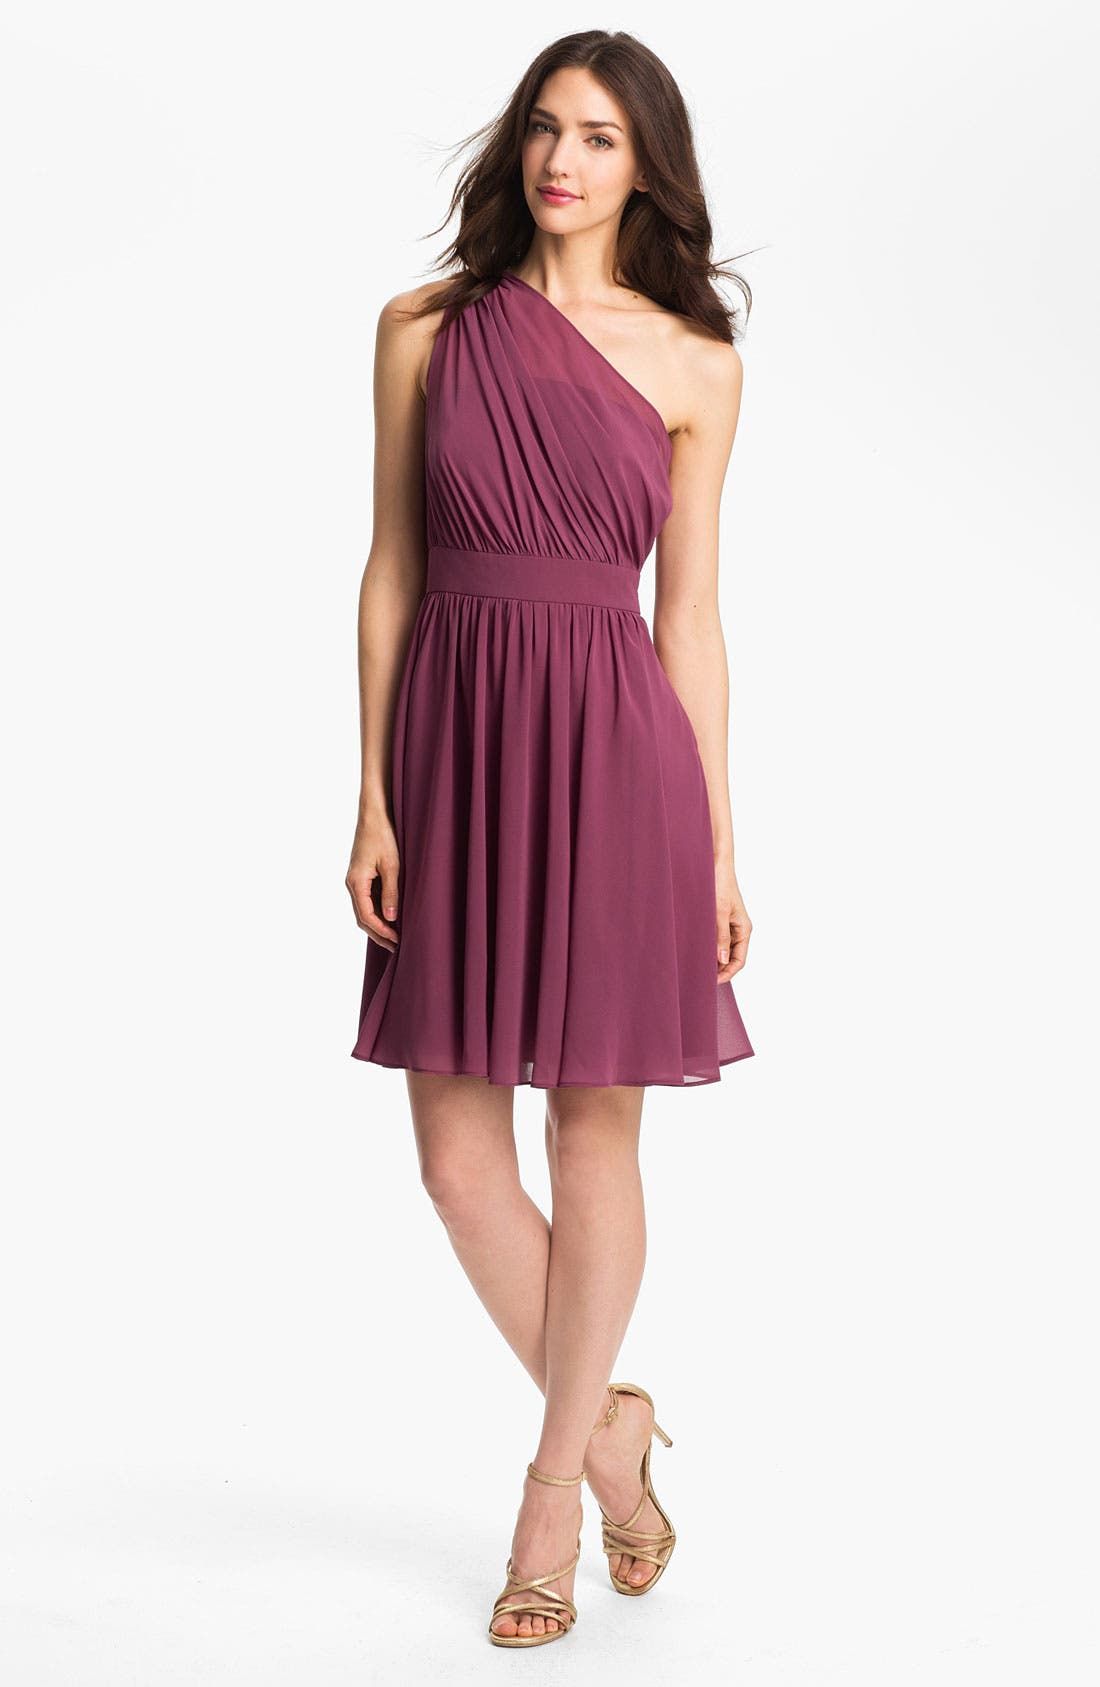 Alternate Image 1 Selected - Suzi Chin for Maggy Boutique One Shoulder Chiffon Dress